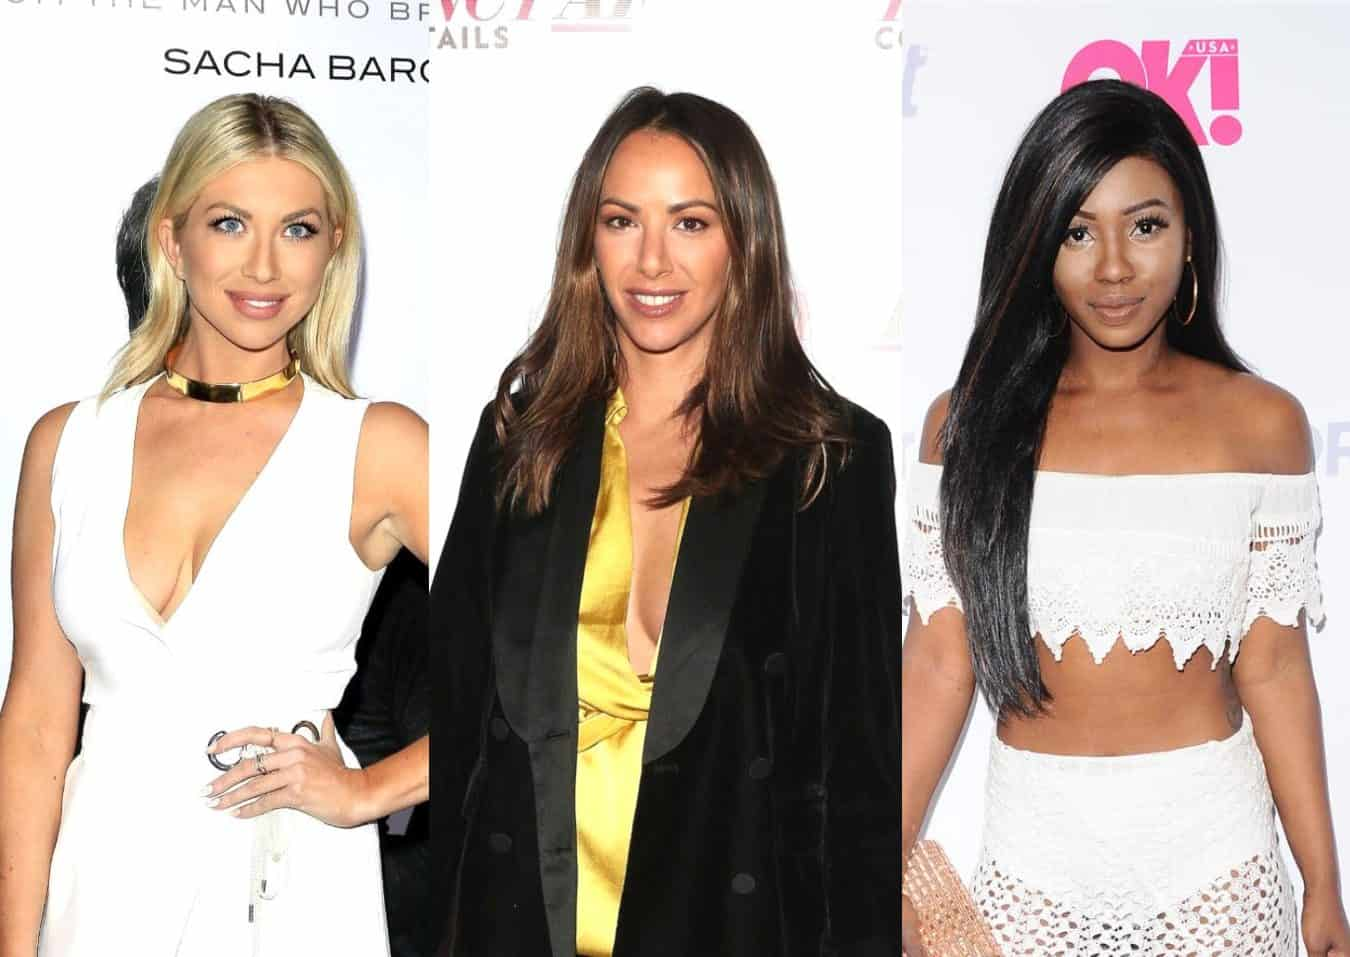 Faith Stowers Rebuffs Attempt by Stassi and Kristen to Privately Apologize, Find Out Why Plus She Has No Plans to Sue the Former Vanderpump Rules Stars